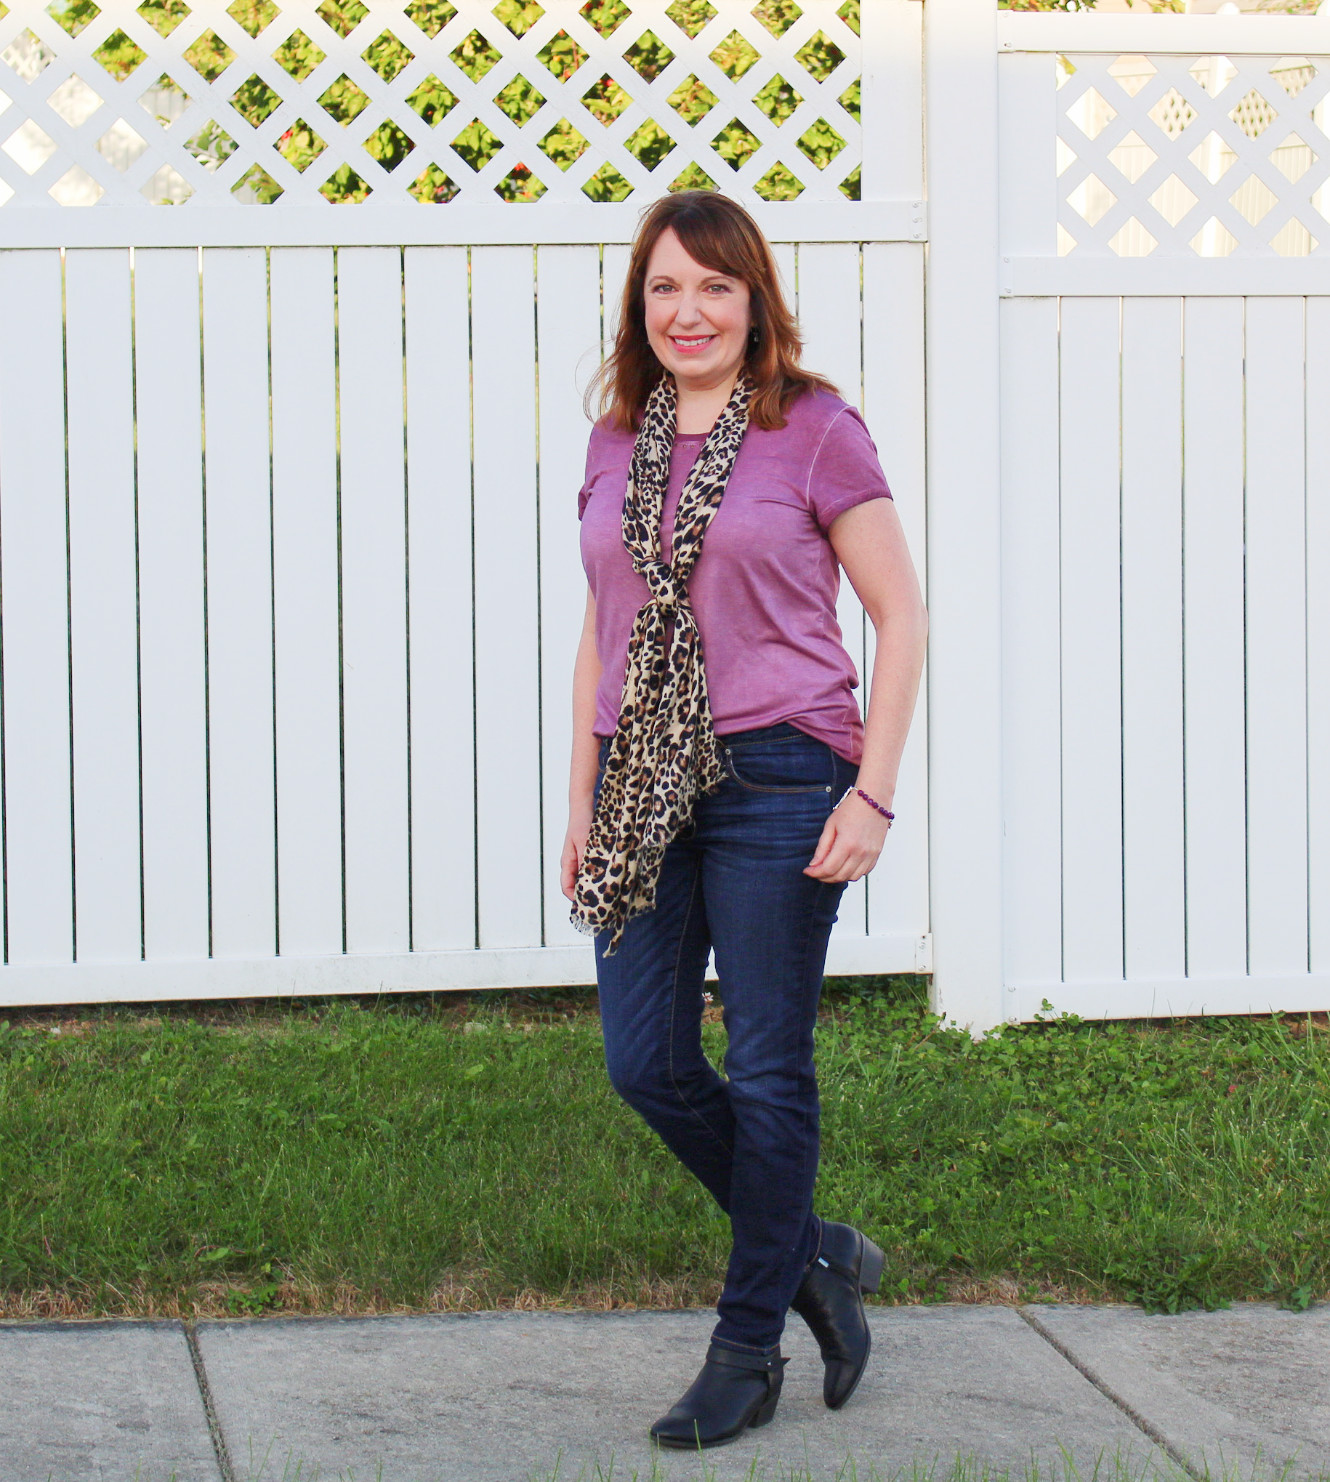 Purple Tee With Leopard Print Scarf Outfit